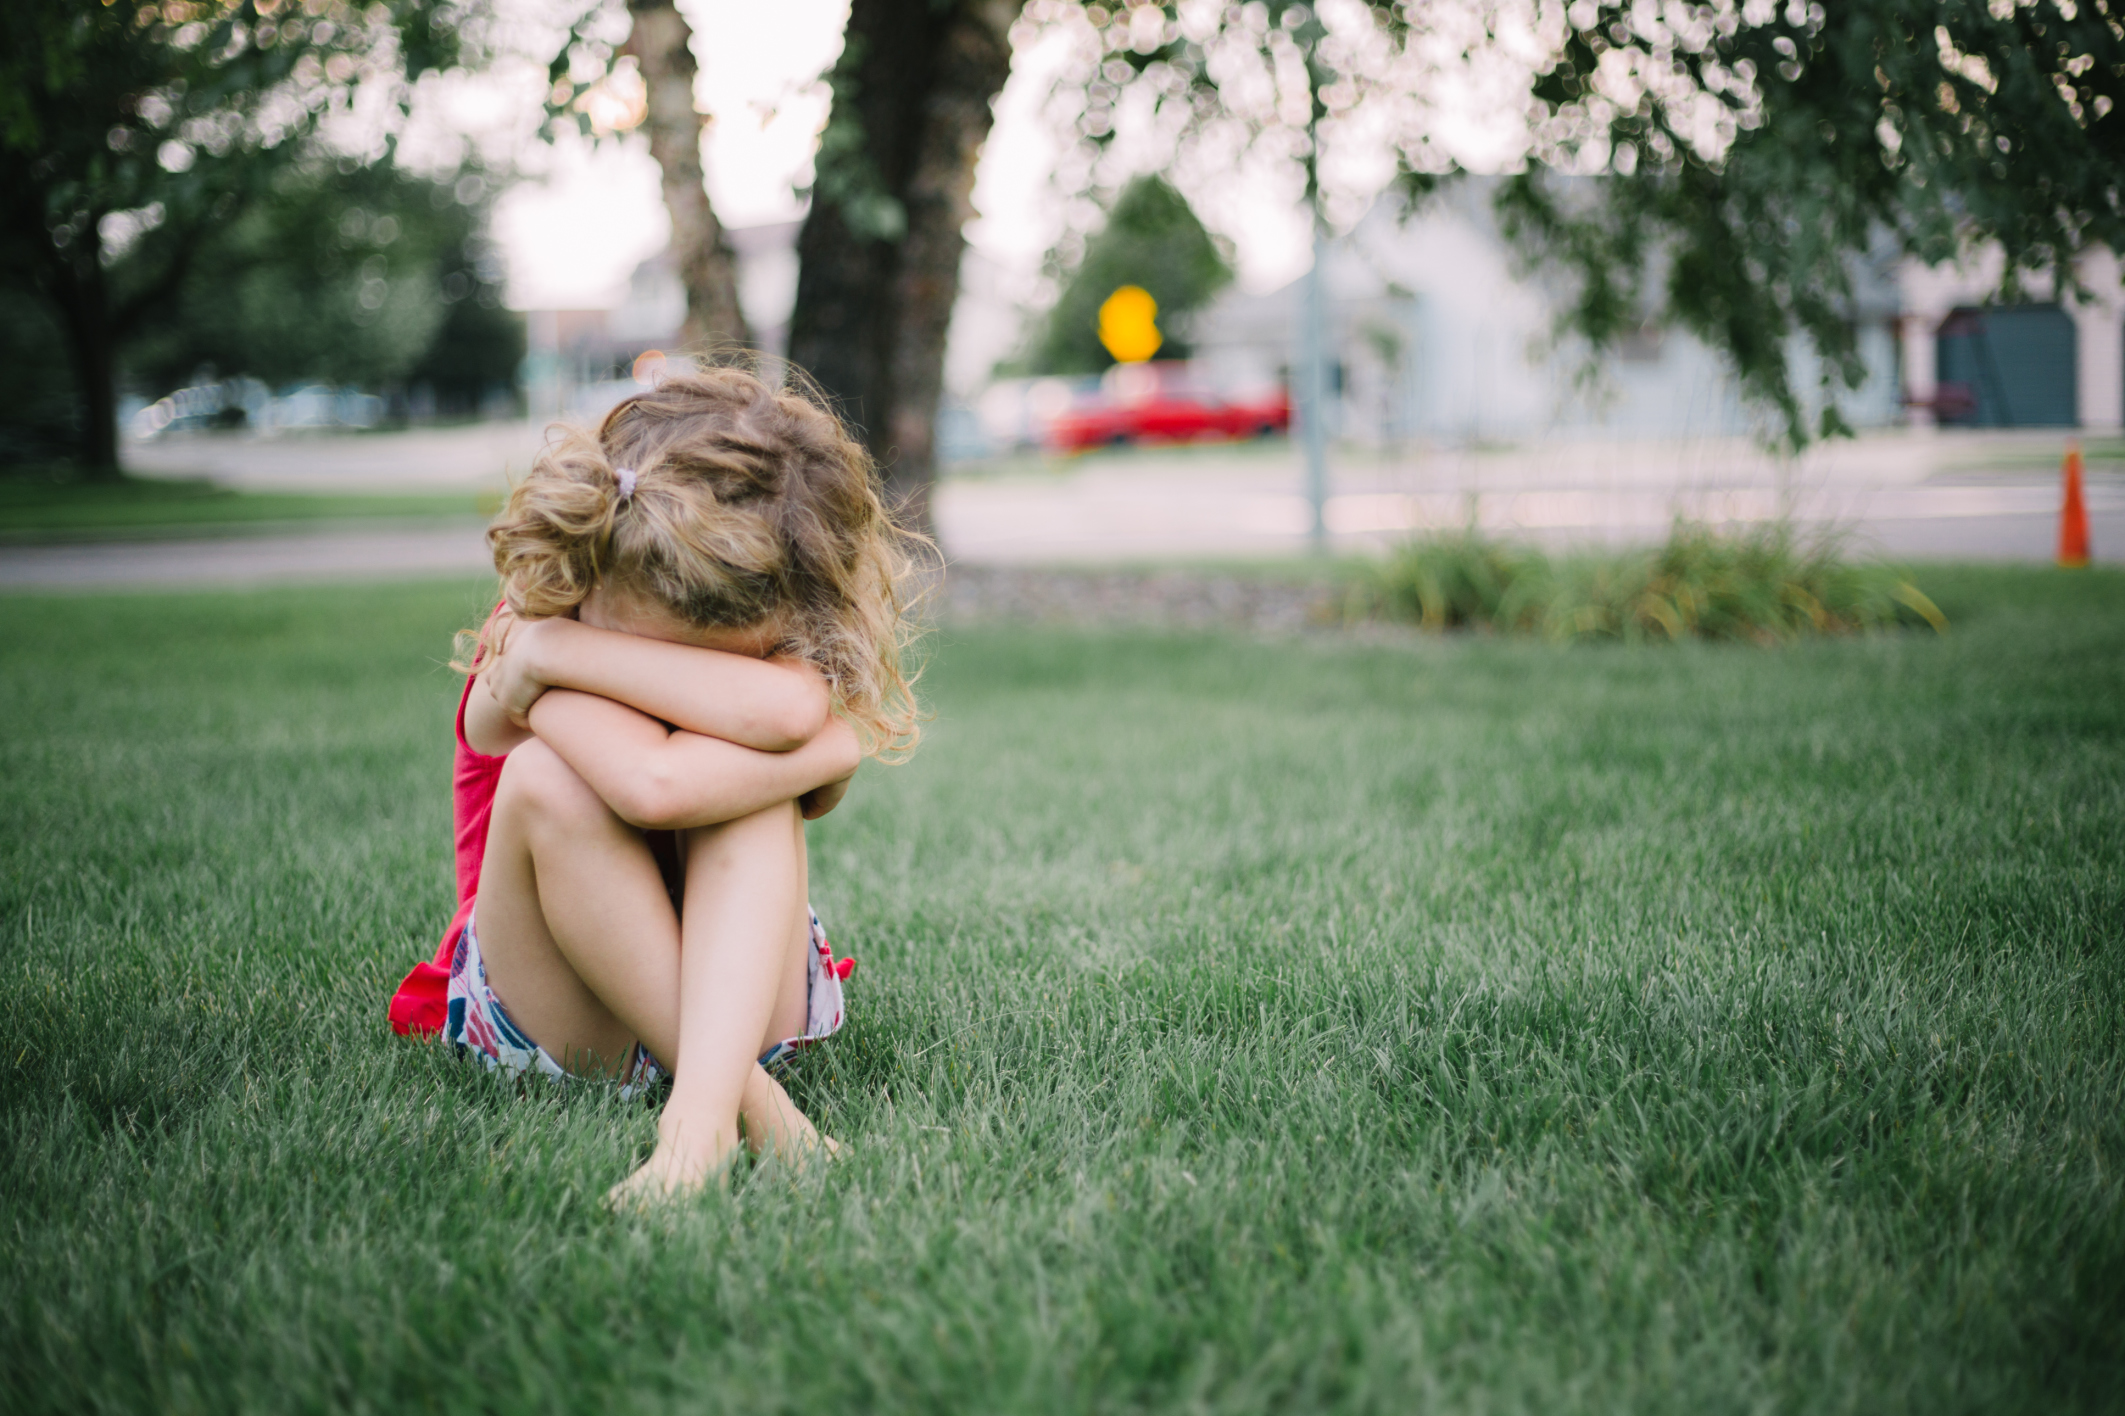 Spanking Kids Causes Mental Health Issues, Study Shows